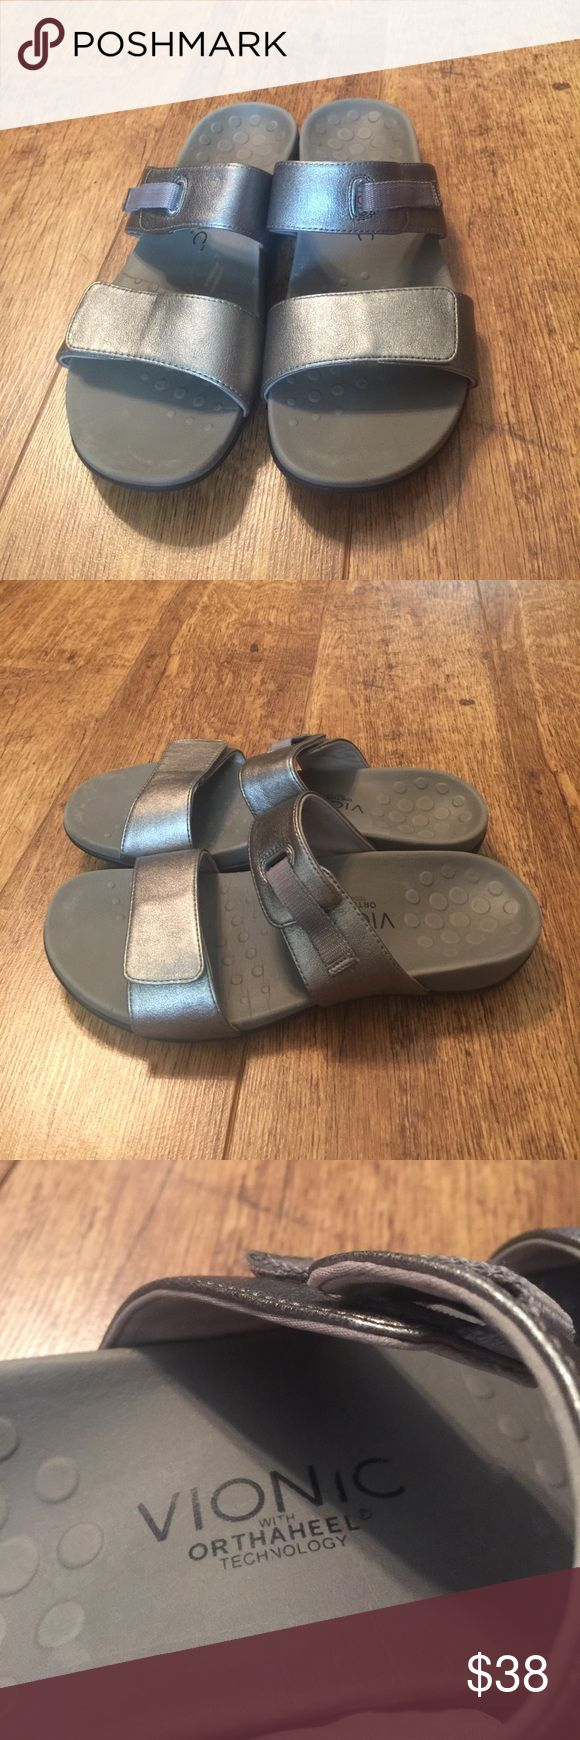 Vionic diver orthaheel silver sandals Slip on  with Velcro fastener, worn once Vionic Shoes Sandals